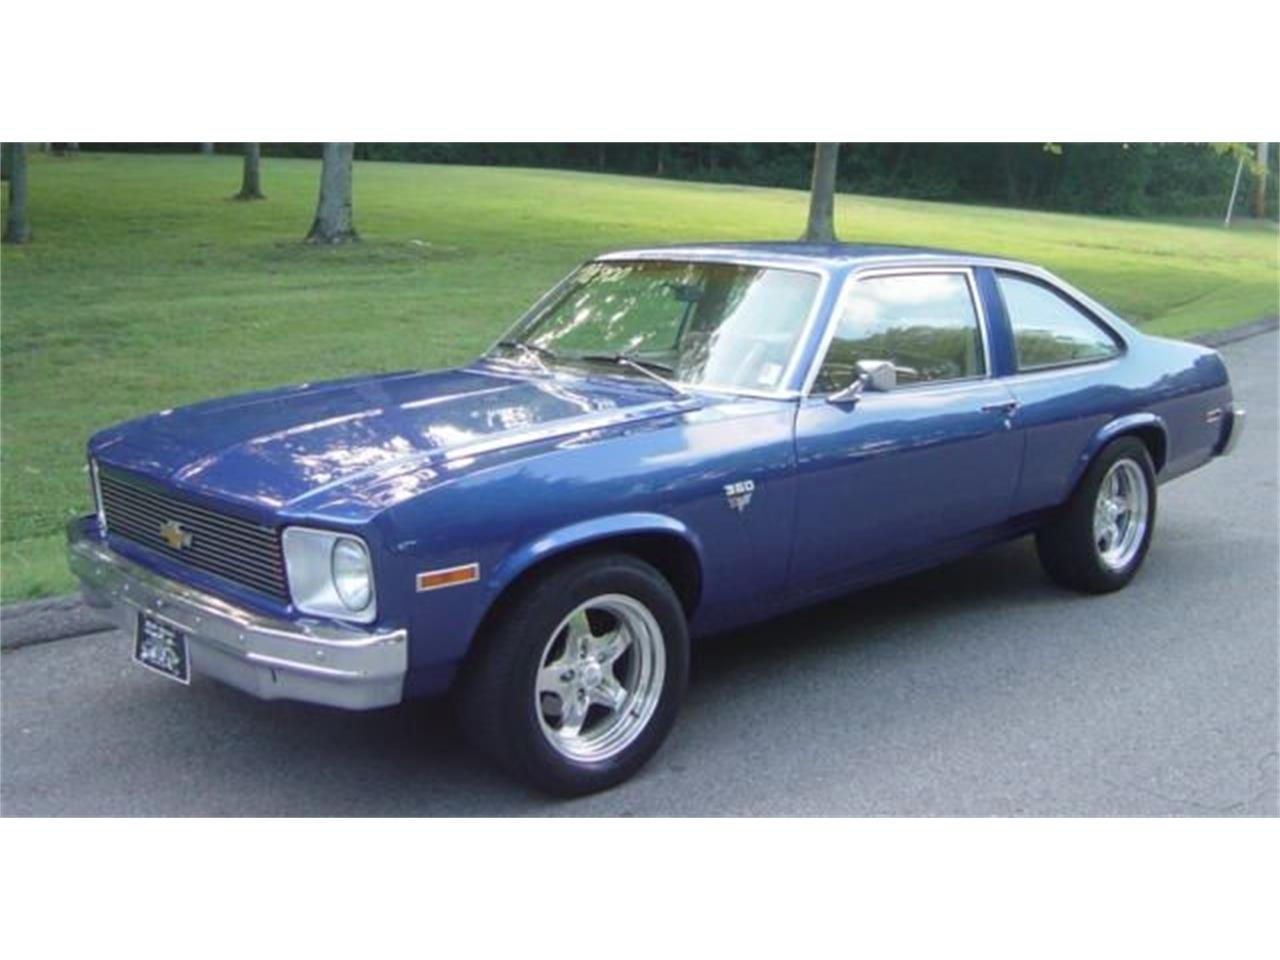 Large Picture of '77 Chevrolet Nova - $10,900.00 Offered by Maple Motors - NRMP